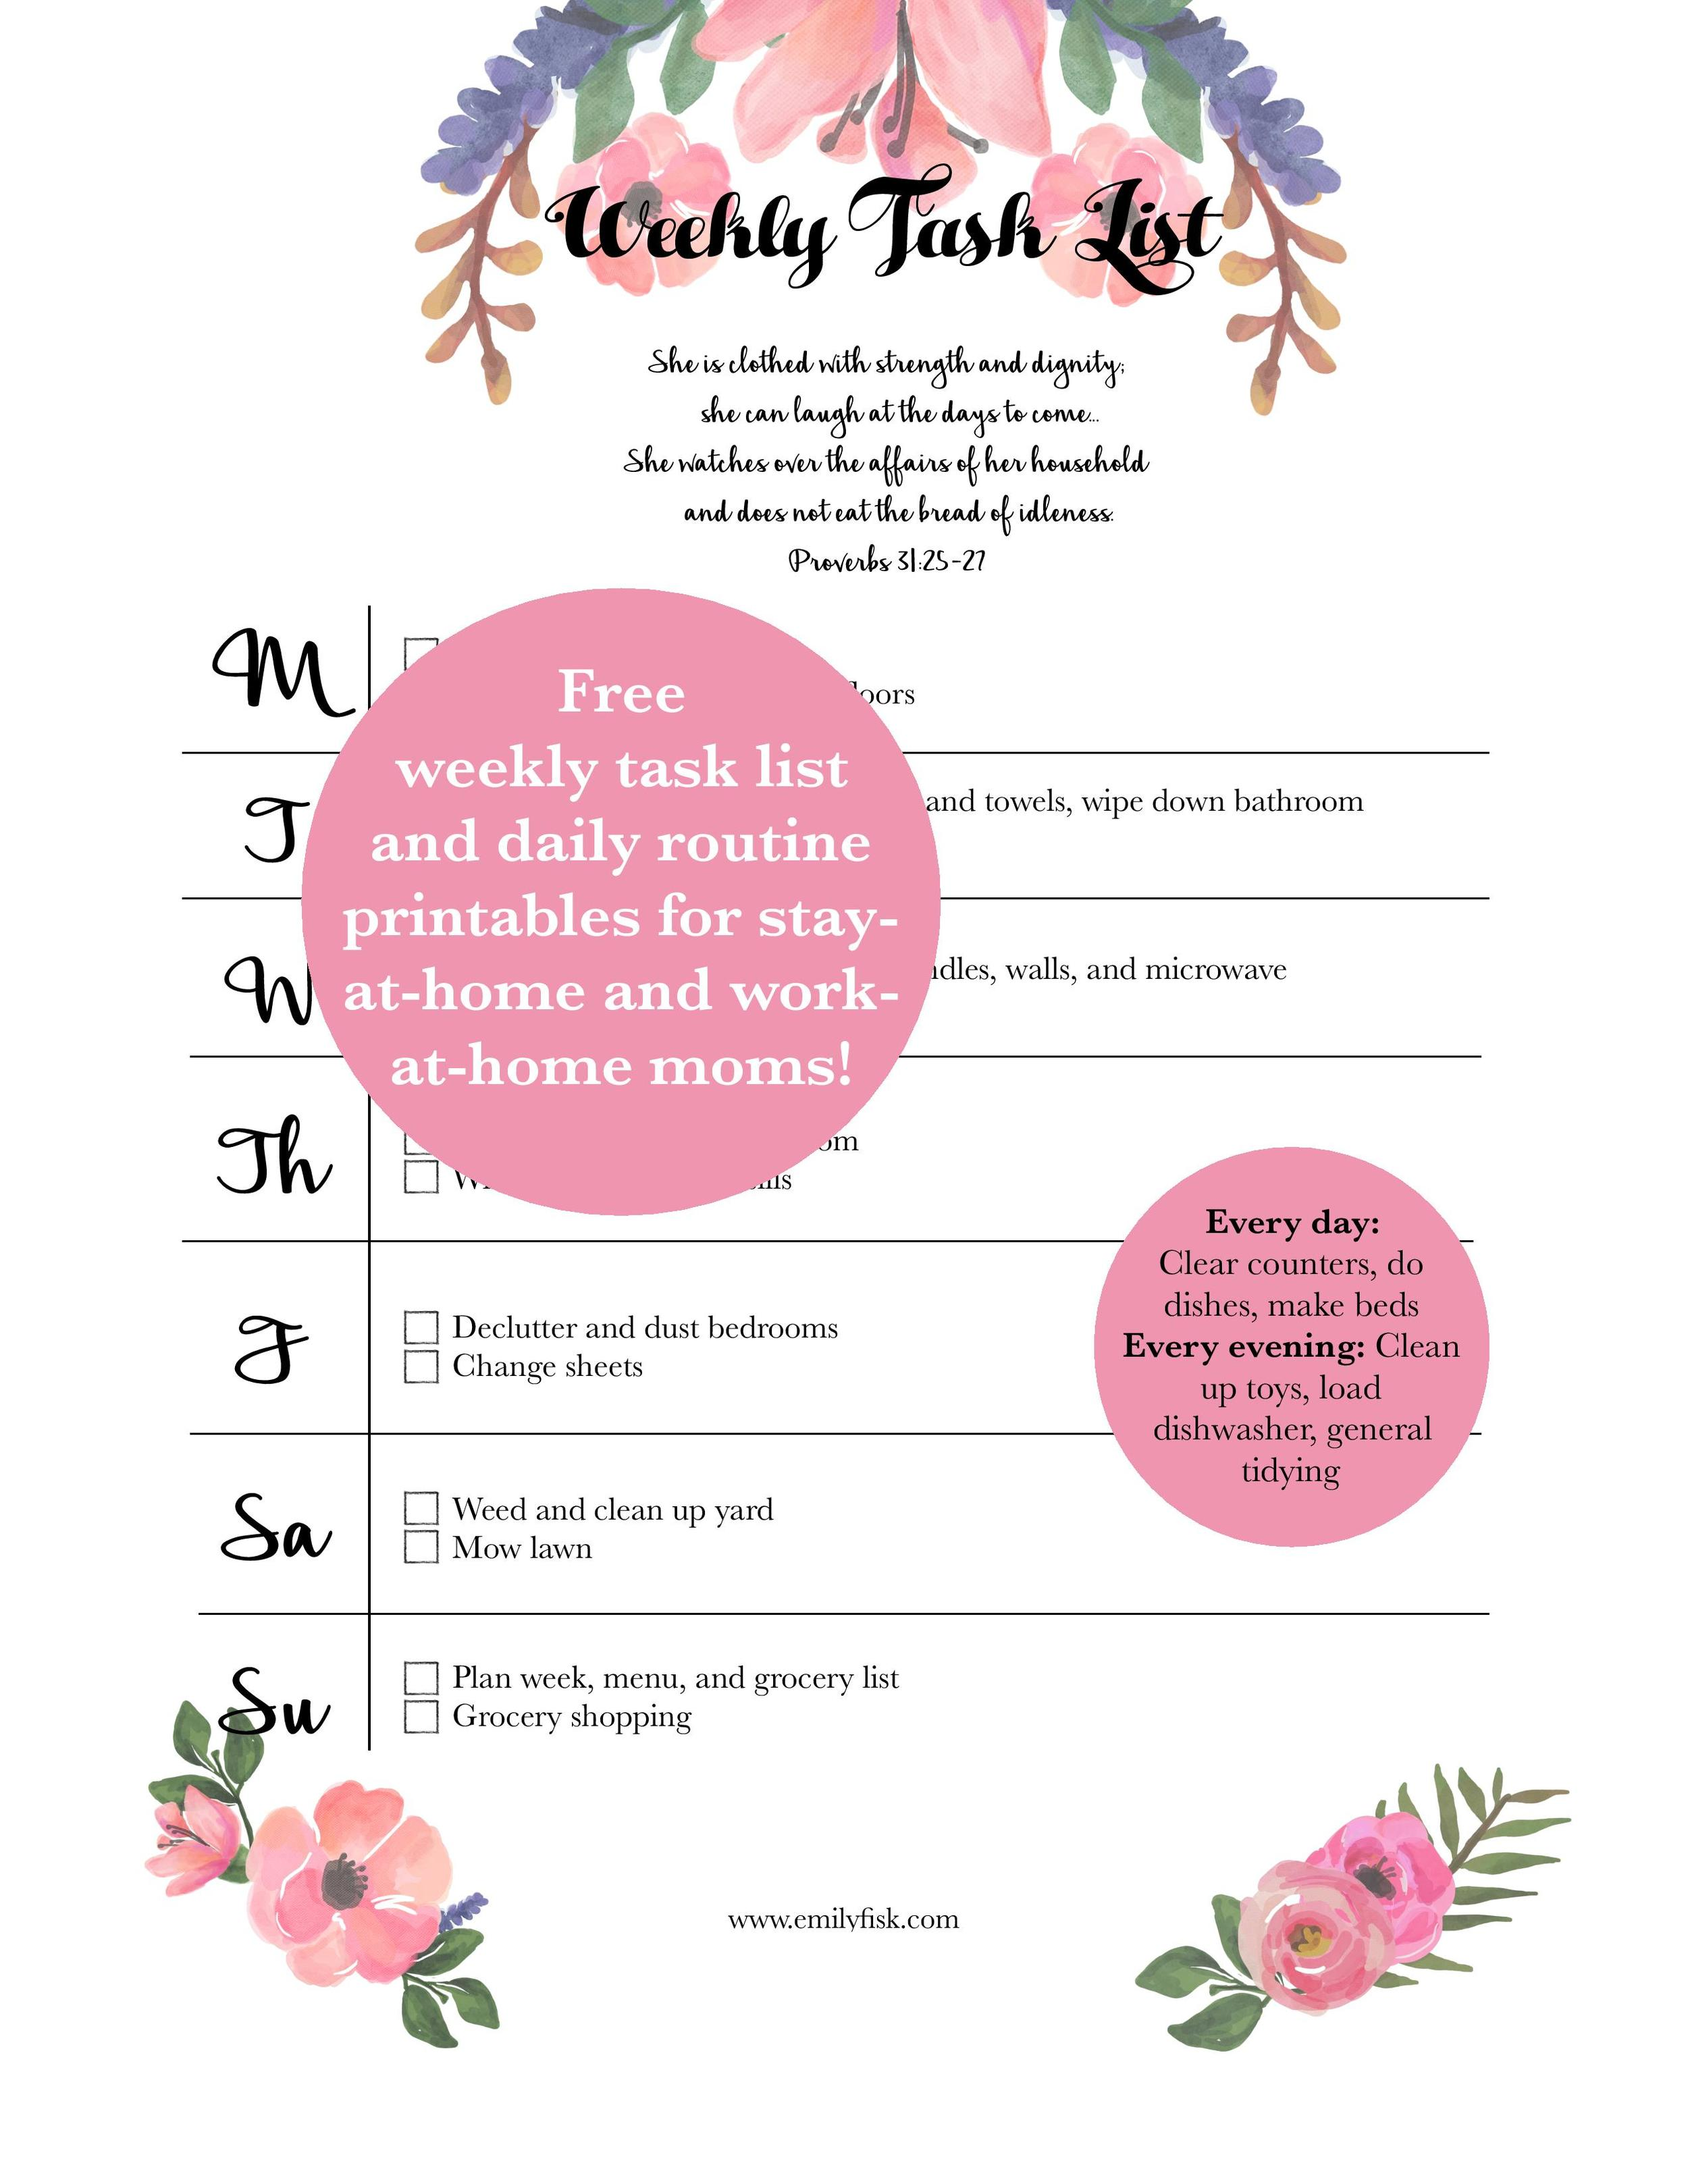 Free weekly cleaning list and daily routine printables from emilyfisk.com! They're even customizable to fit your life.